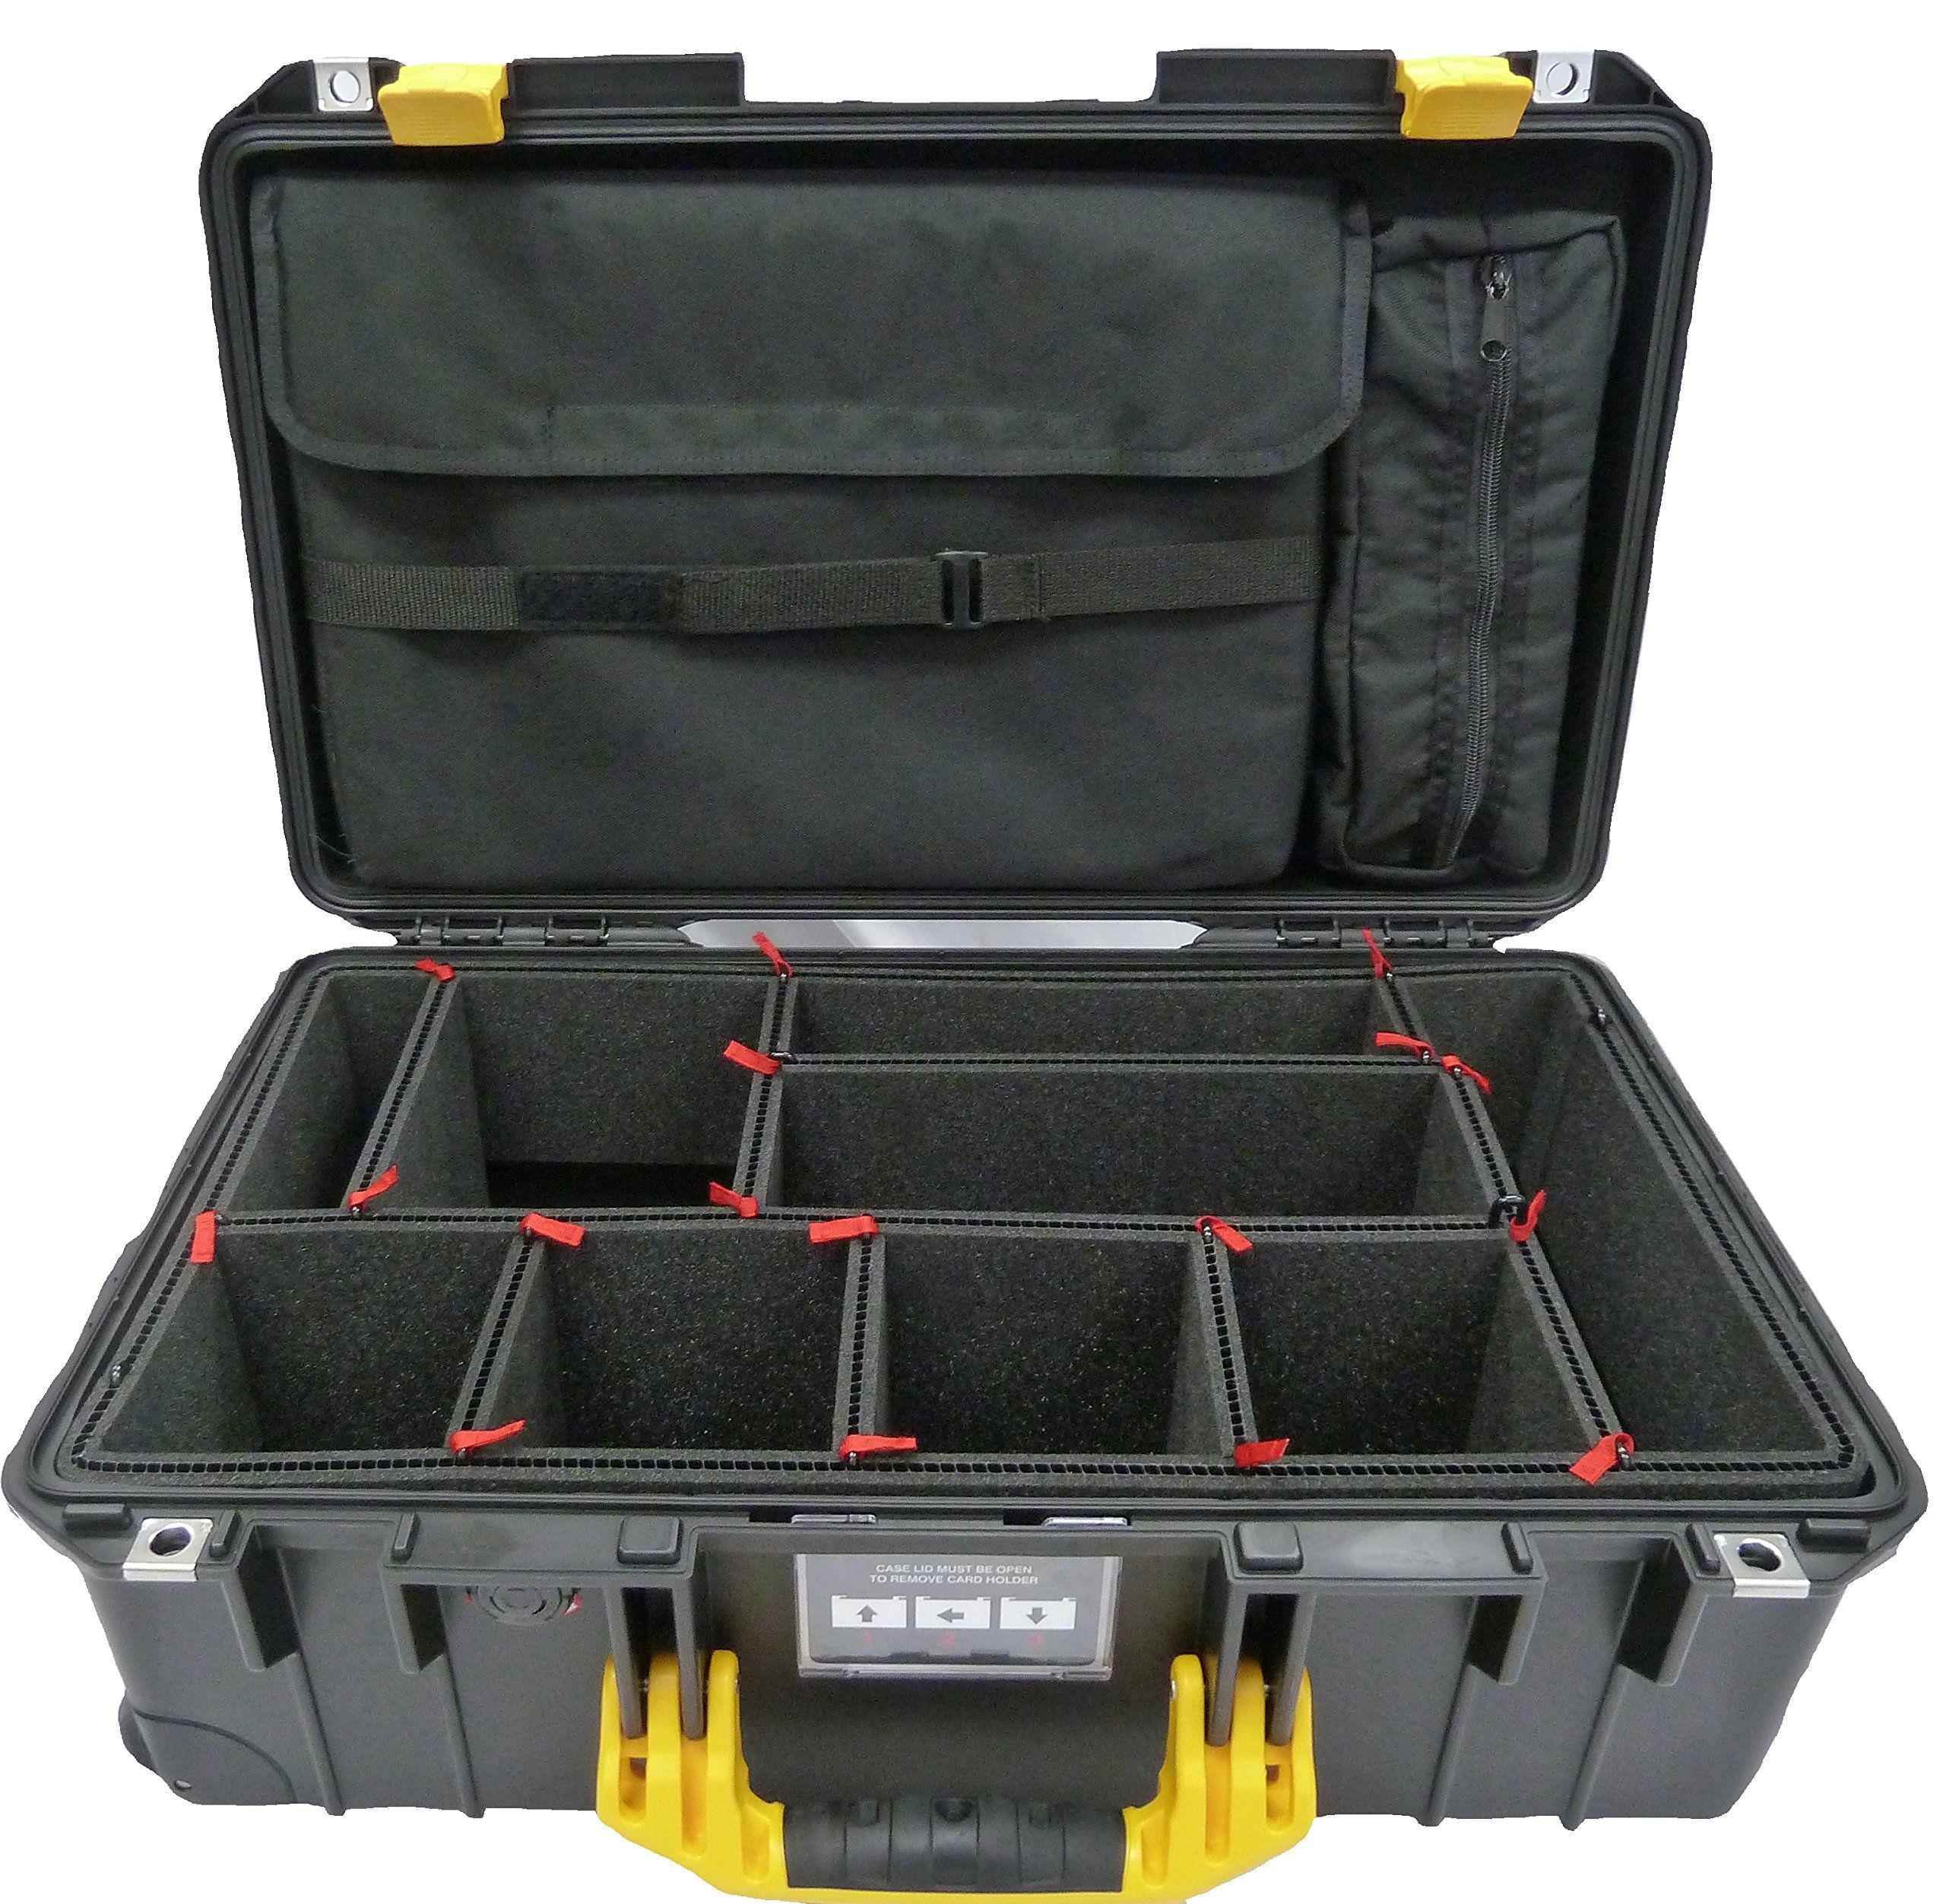 CVPKG Presents Black & Yellow Pelican 1535 Air case, with